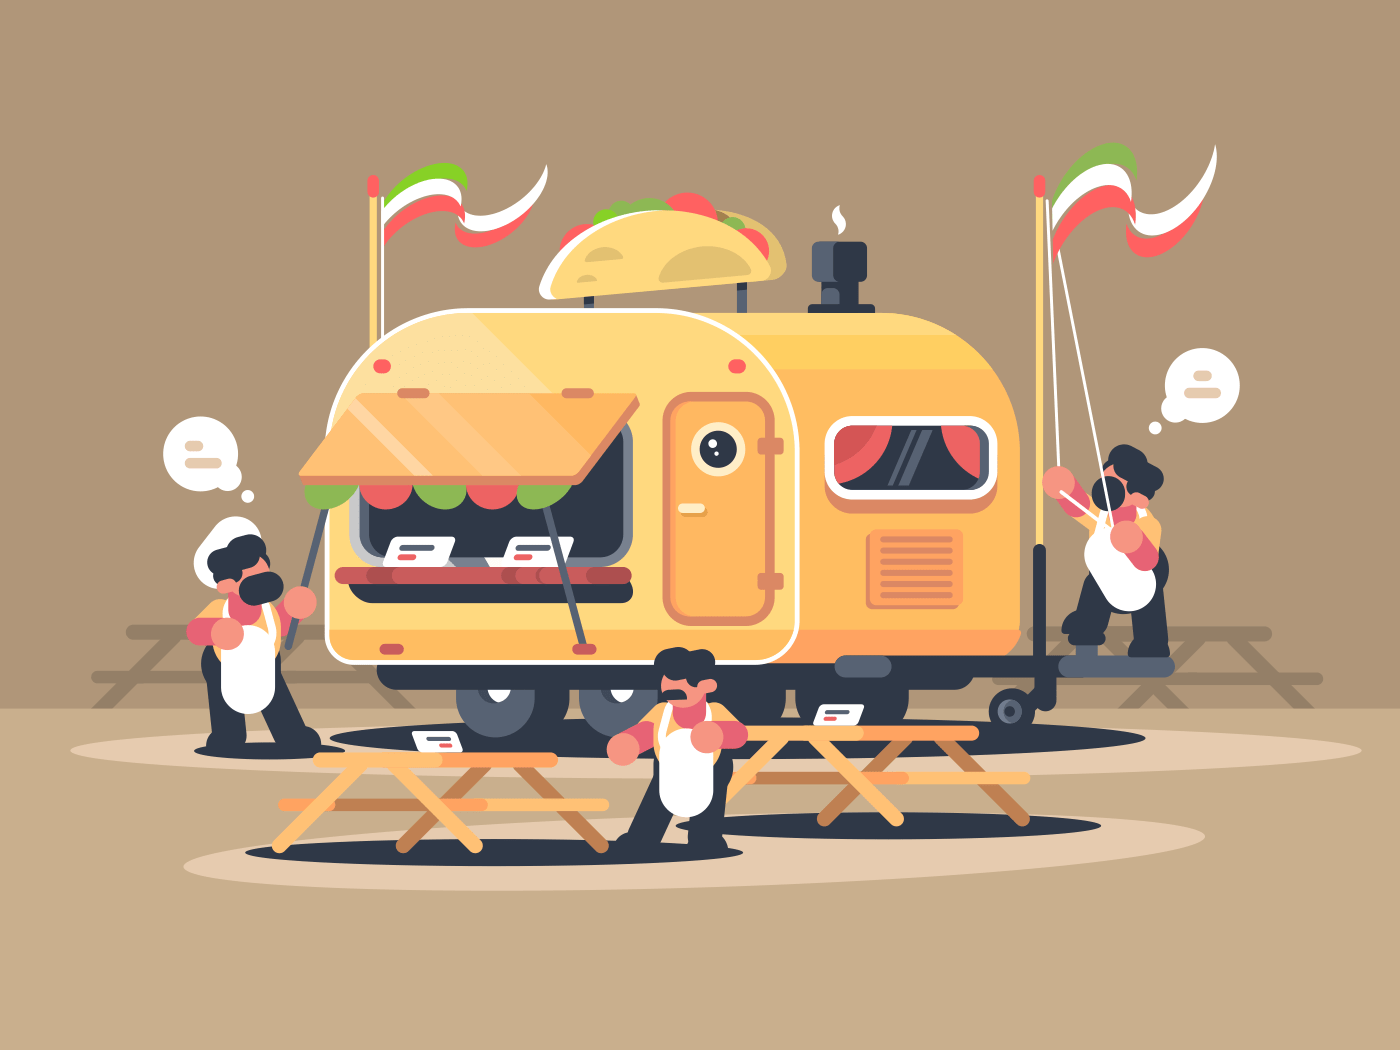 Mobile van kiosk for sale nachos. Cafe mexican cuisine. Vector illustration